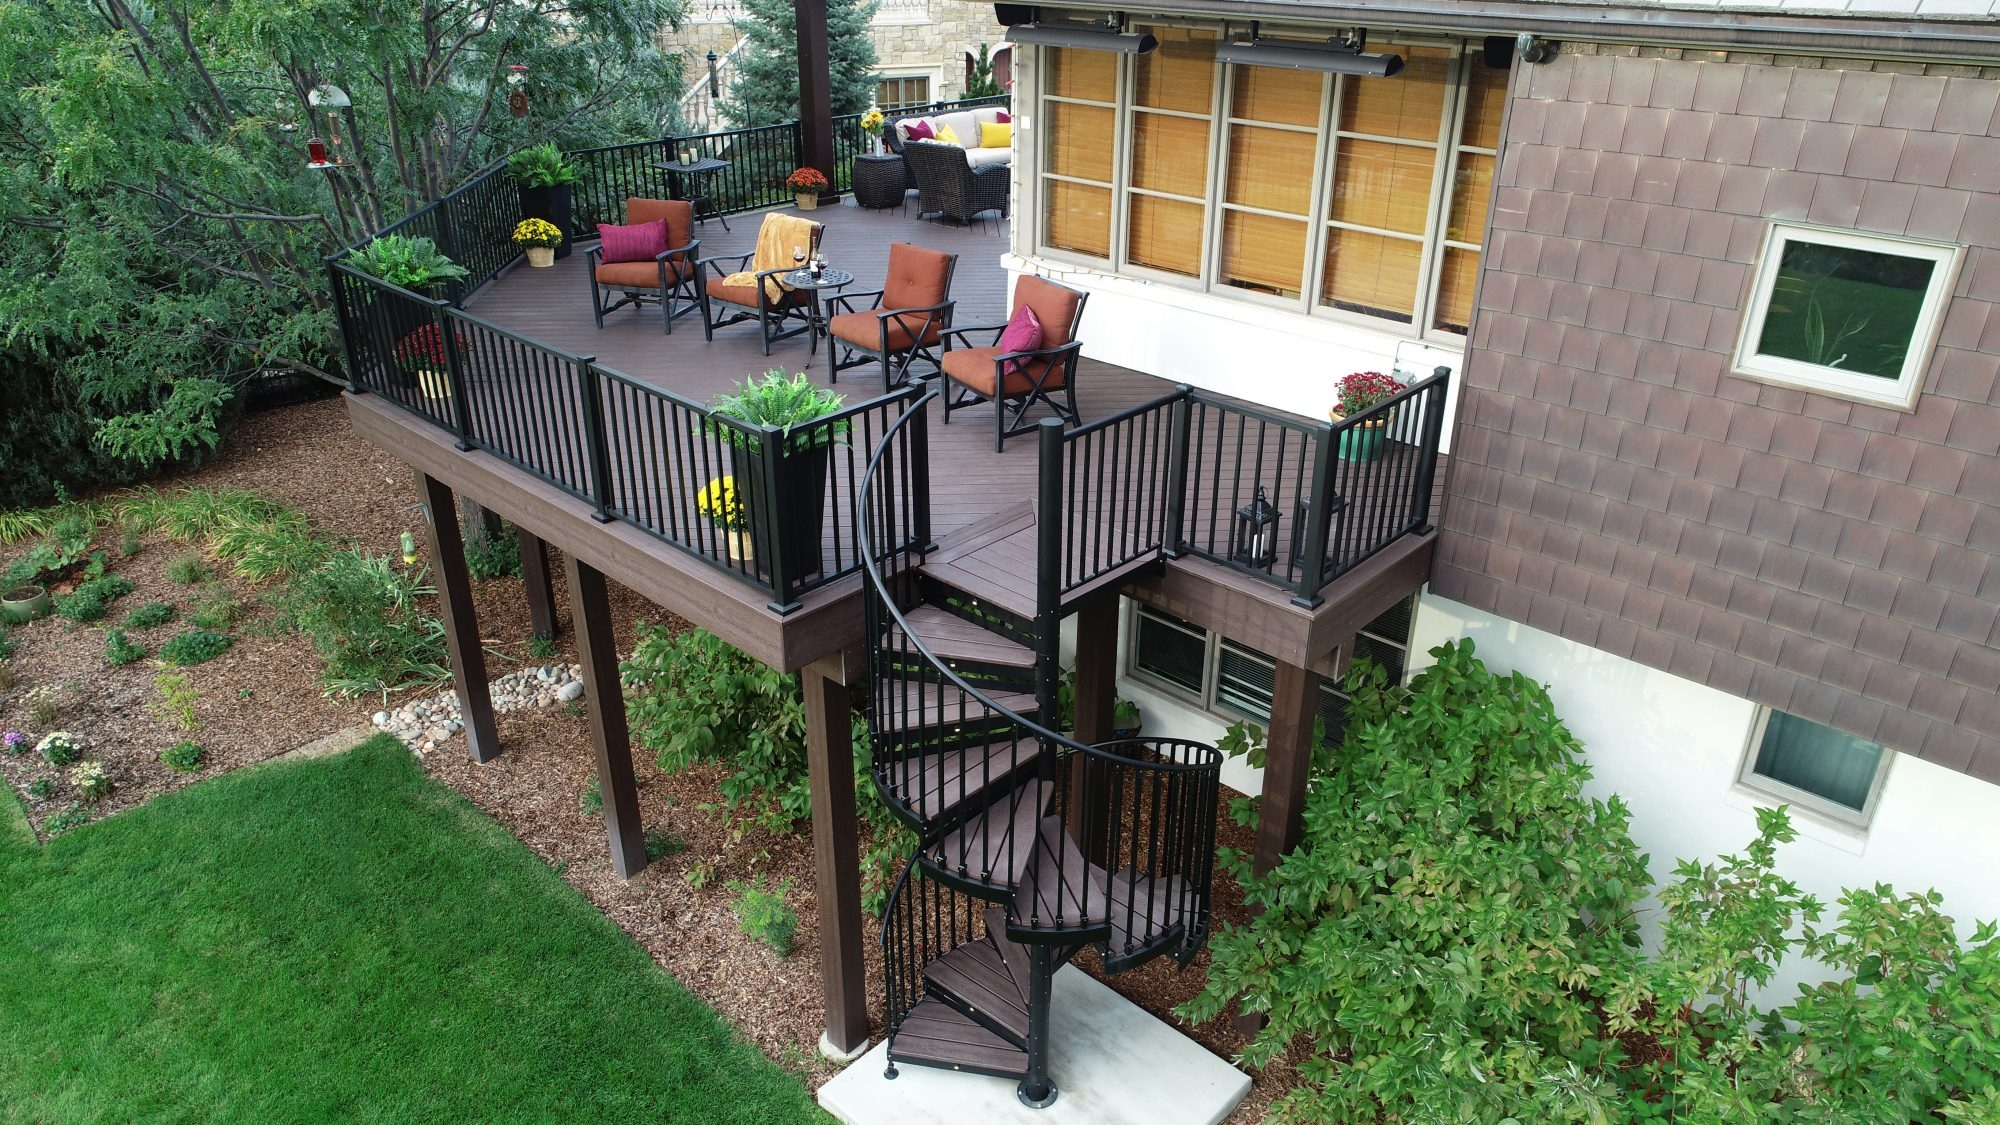 Discover The Ultimate Staircase Alternative Trex Spiral Stairs | Outdoor Spiral Staircase For Deck | Farmhouse | Basement | Multi Level | 2Nd Floor | Steel